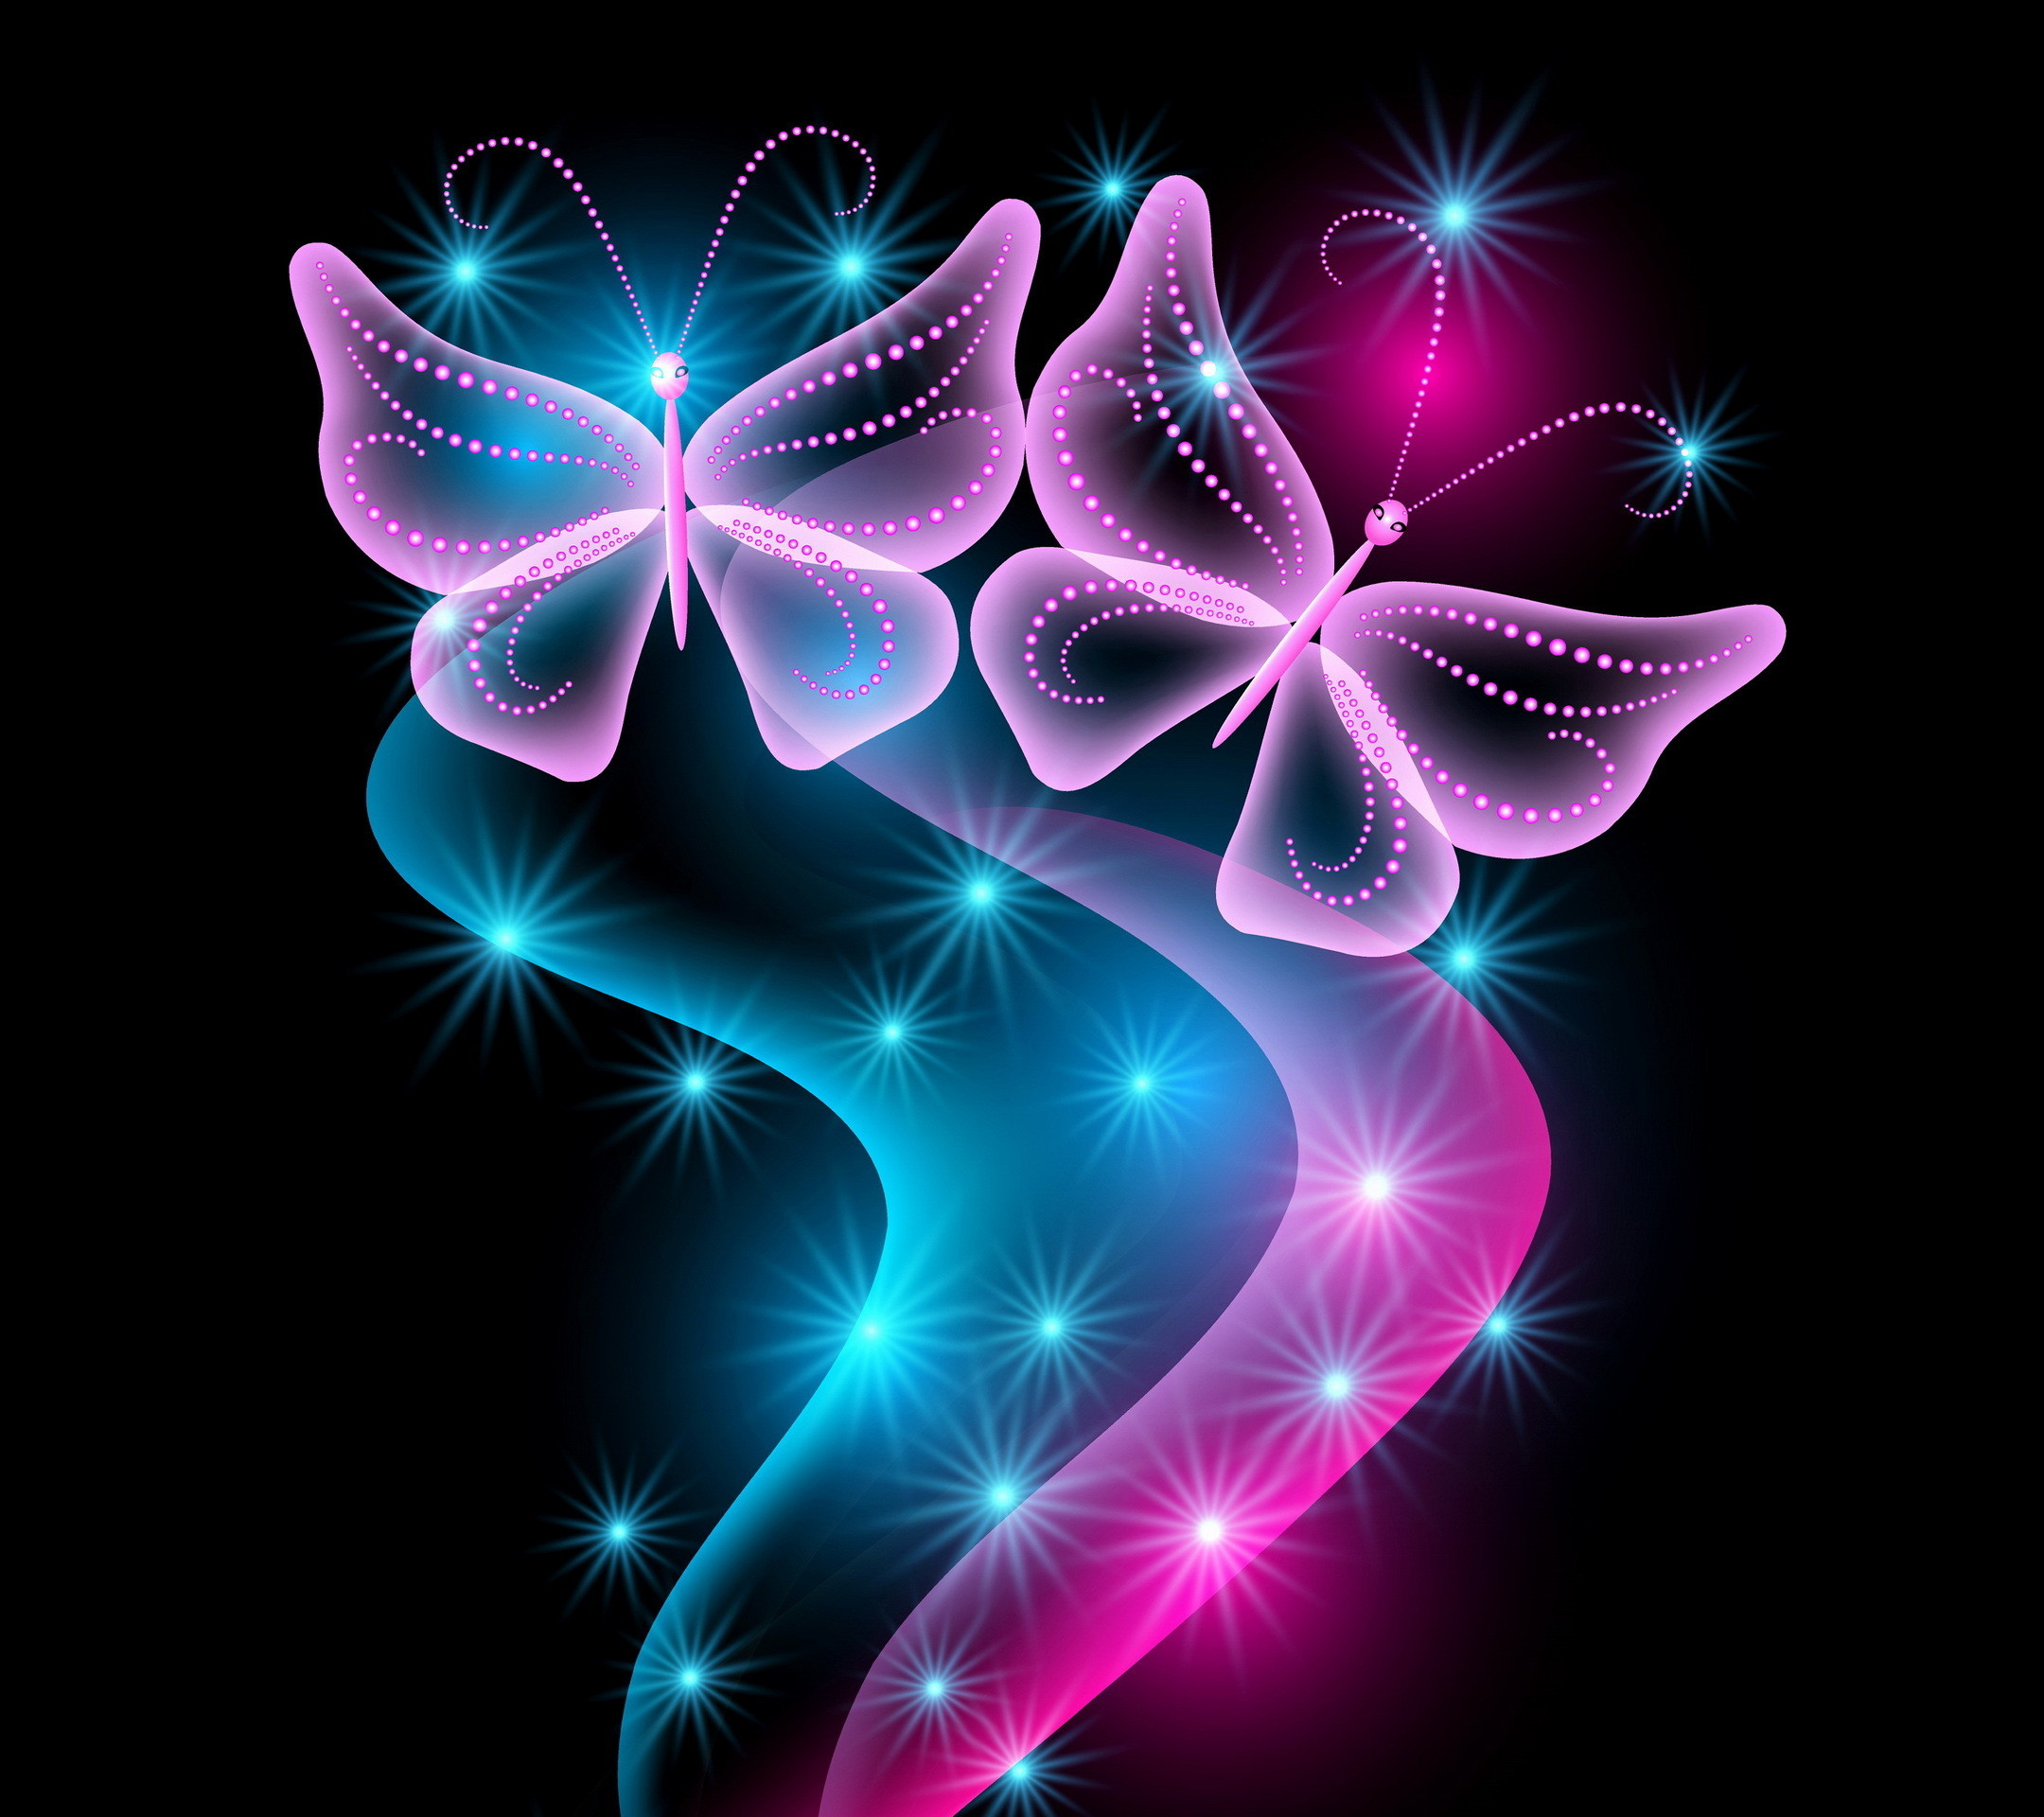 2160x1920 Wallpaper Butterflies, Neon, Light, Abstract, Black background HD, Picture,  Image